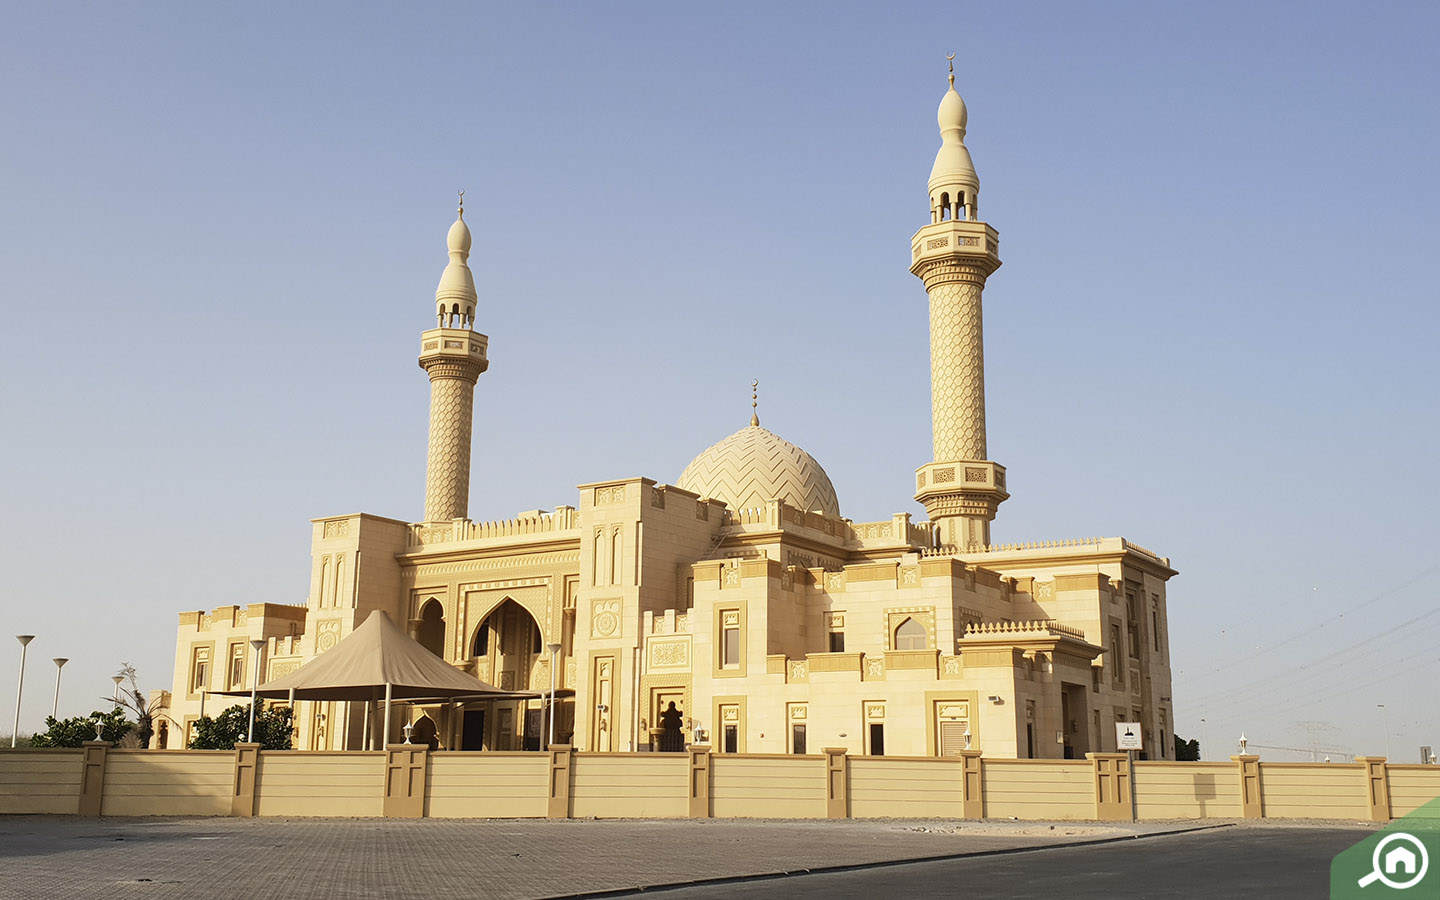 Mosques in Jebel Ali